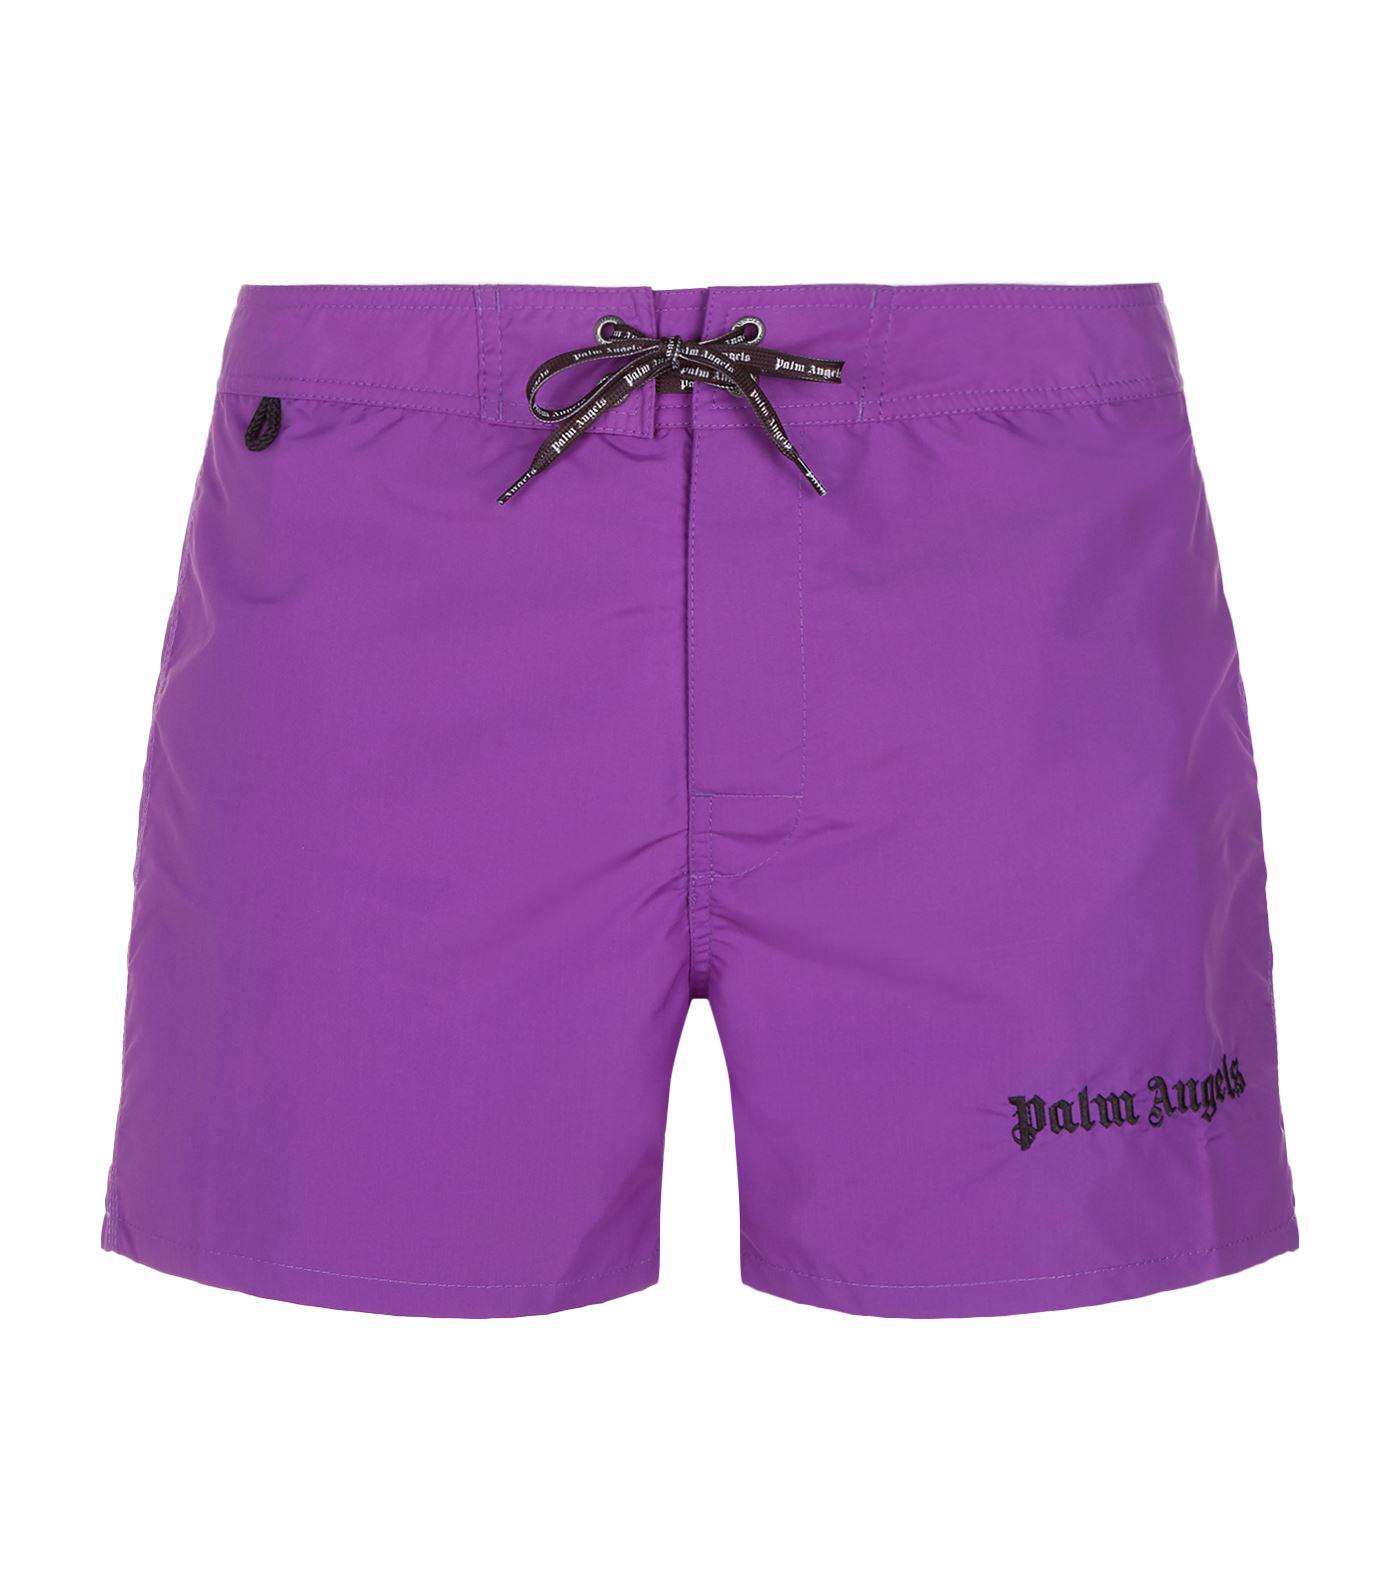 910183a3fb Palm Angels Iconic Logo Embroidered Swim Shorts in Purple for Men - Lyst